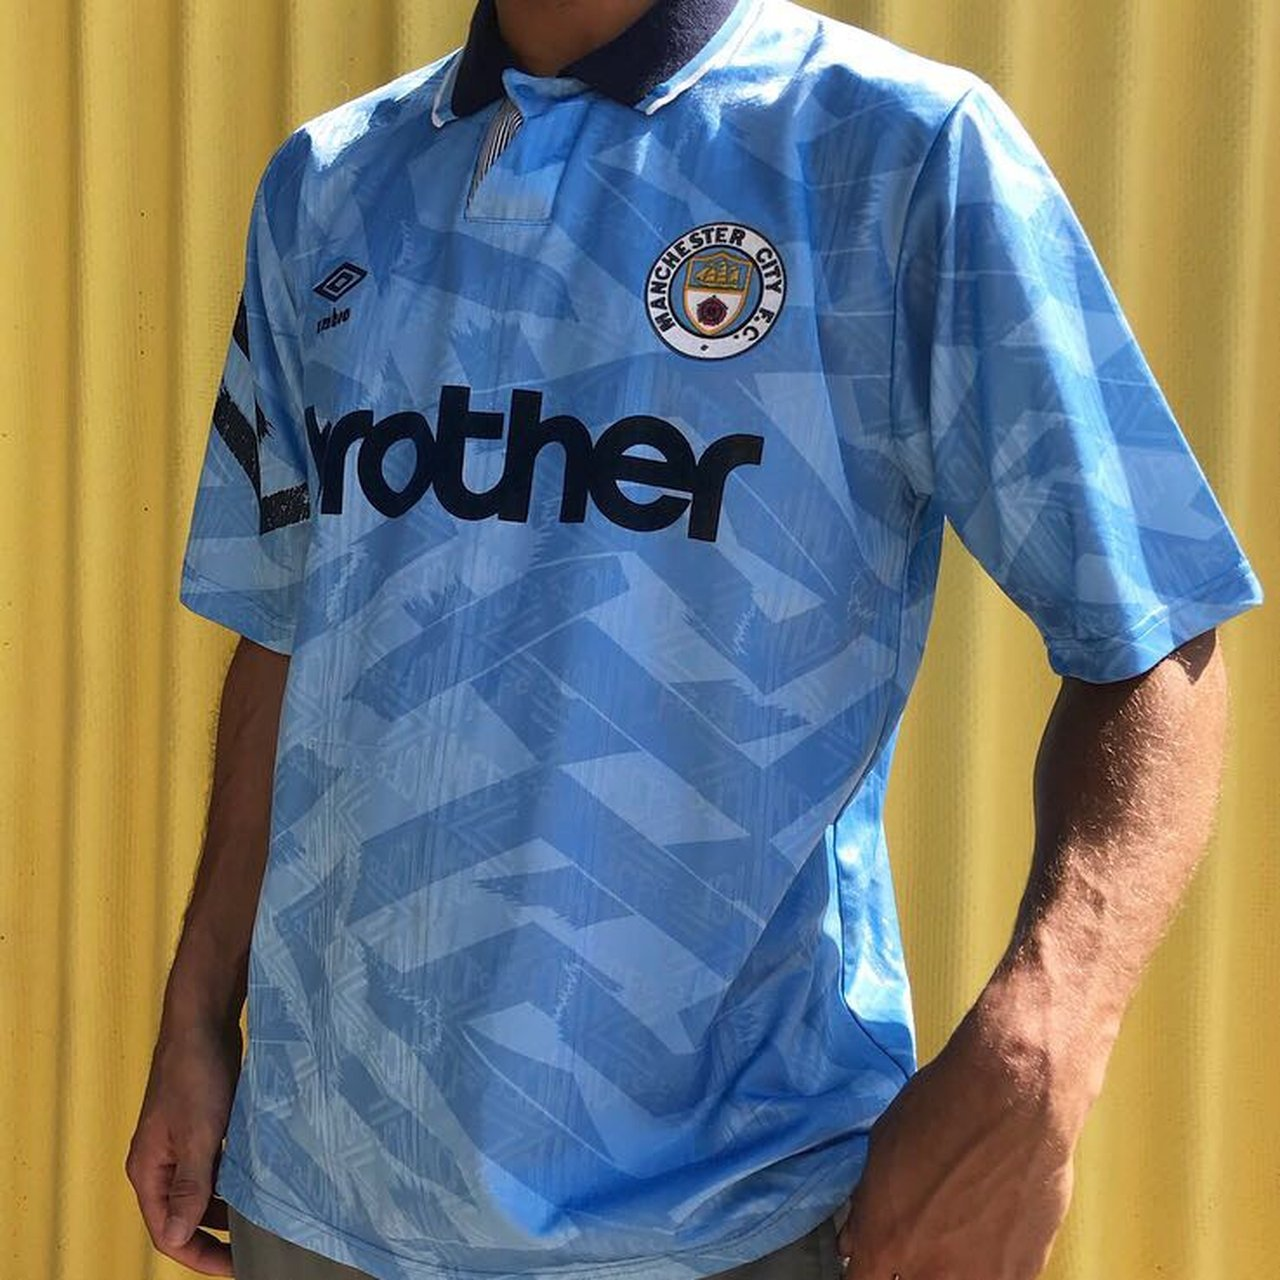 c82d85e443d UMBRO retro Man City shirt. Perfect for summer ! No size But - Depop